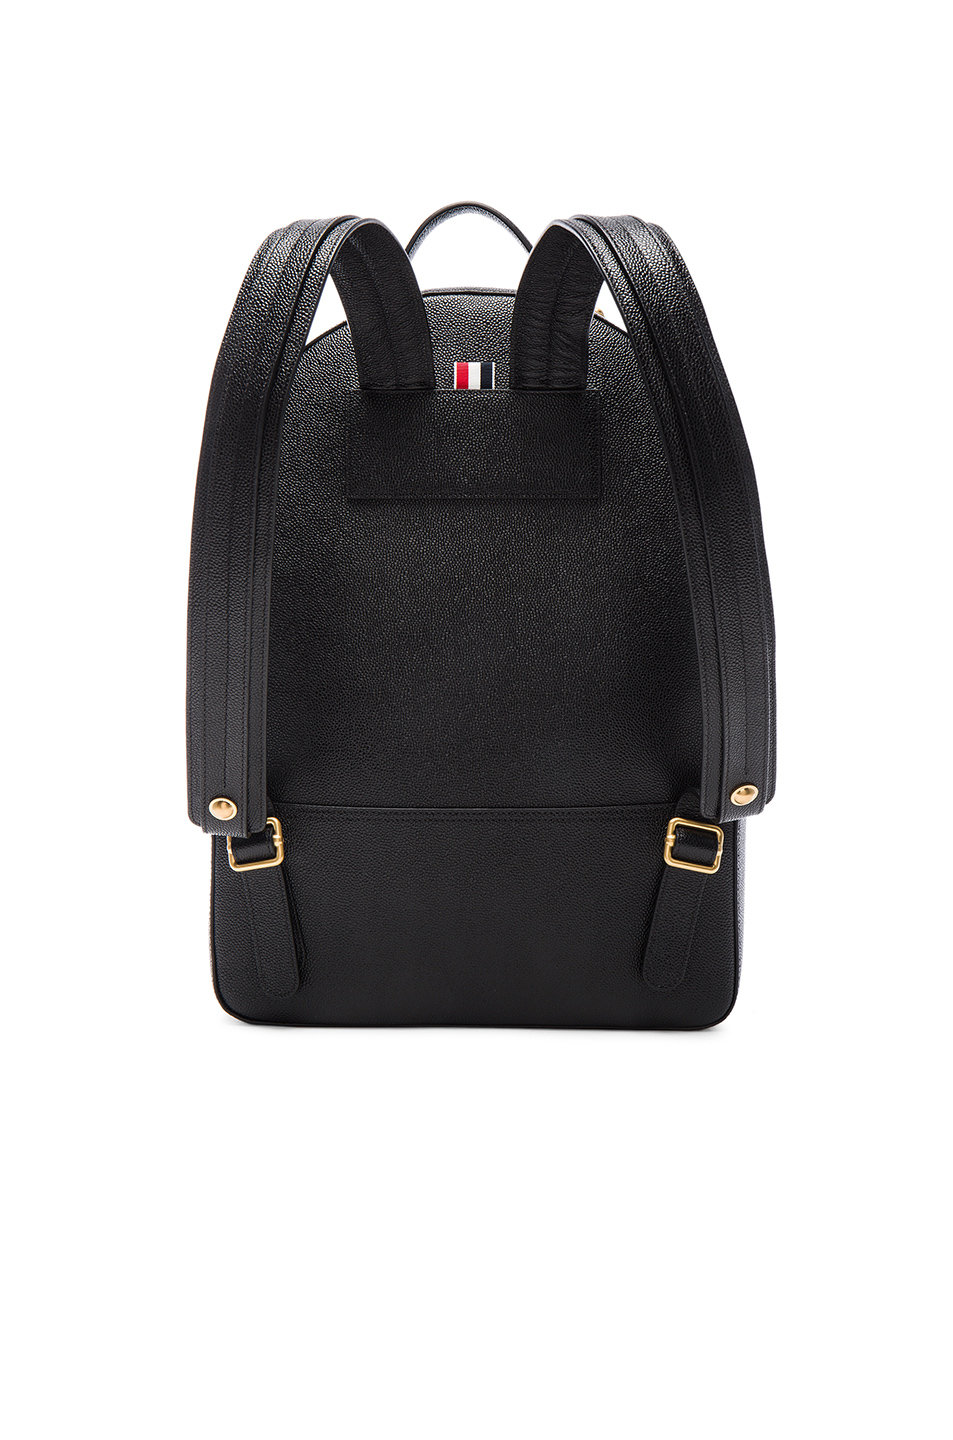 0e2f9cede2 Jual Thom Browne Backpack - 100% Original | BOBOBOBO